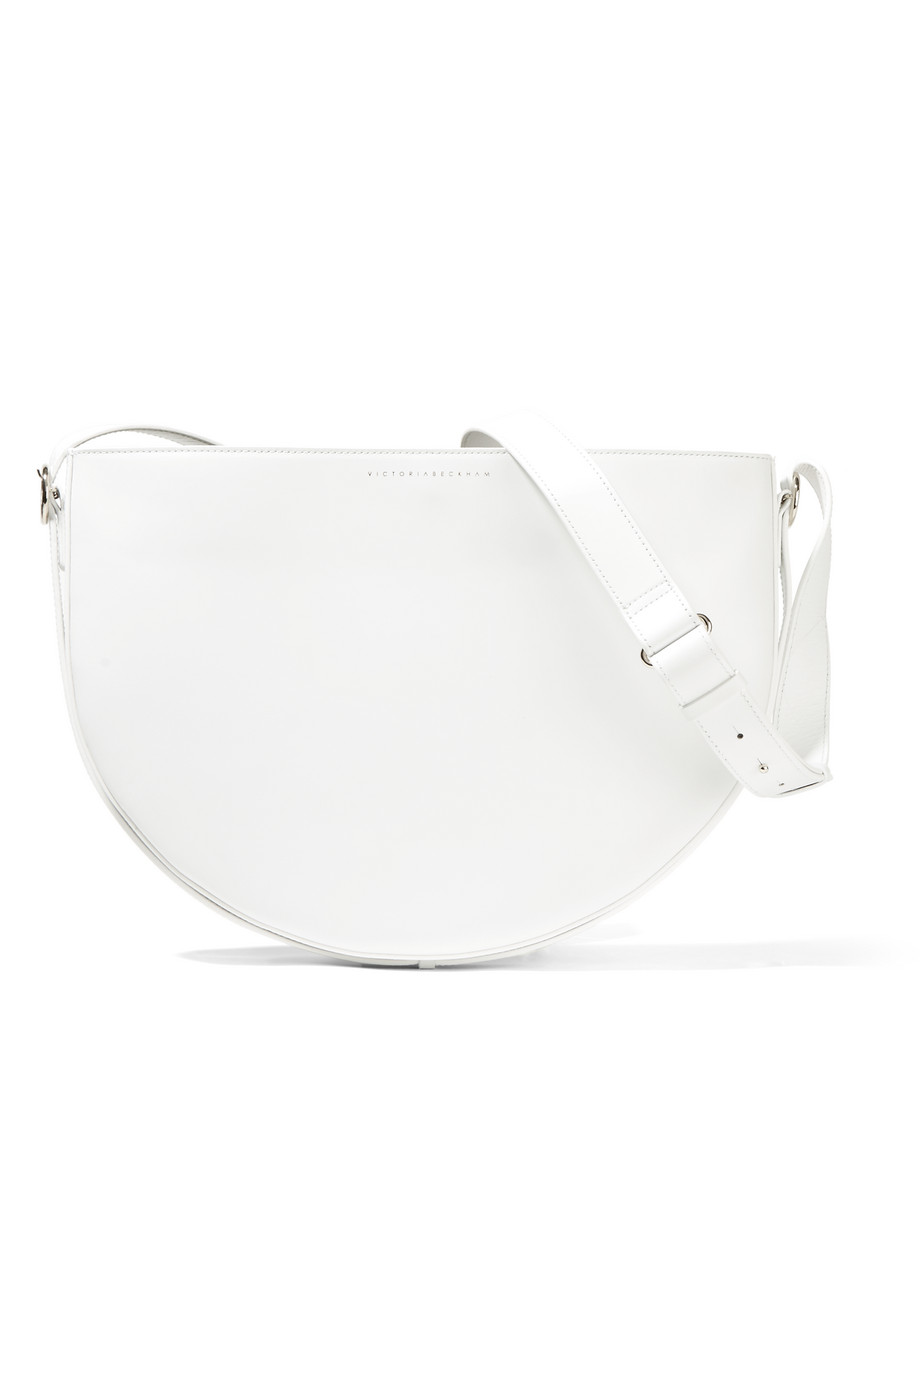 Victoria Beckham Half Moon Leather Shoulder Bag, White, Women's